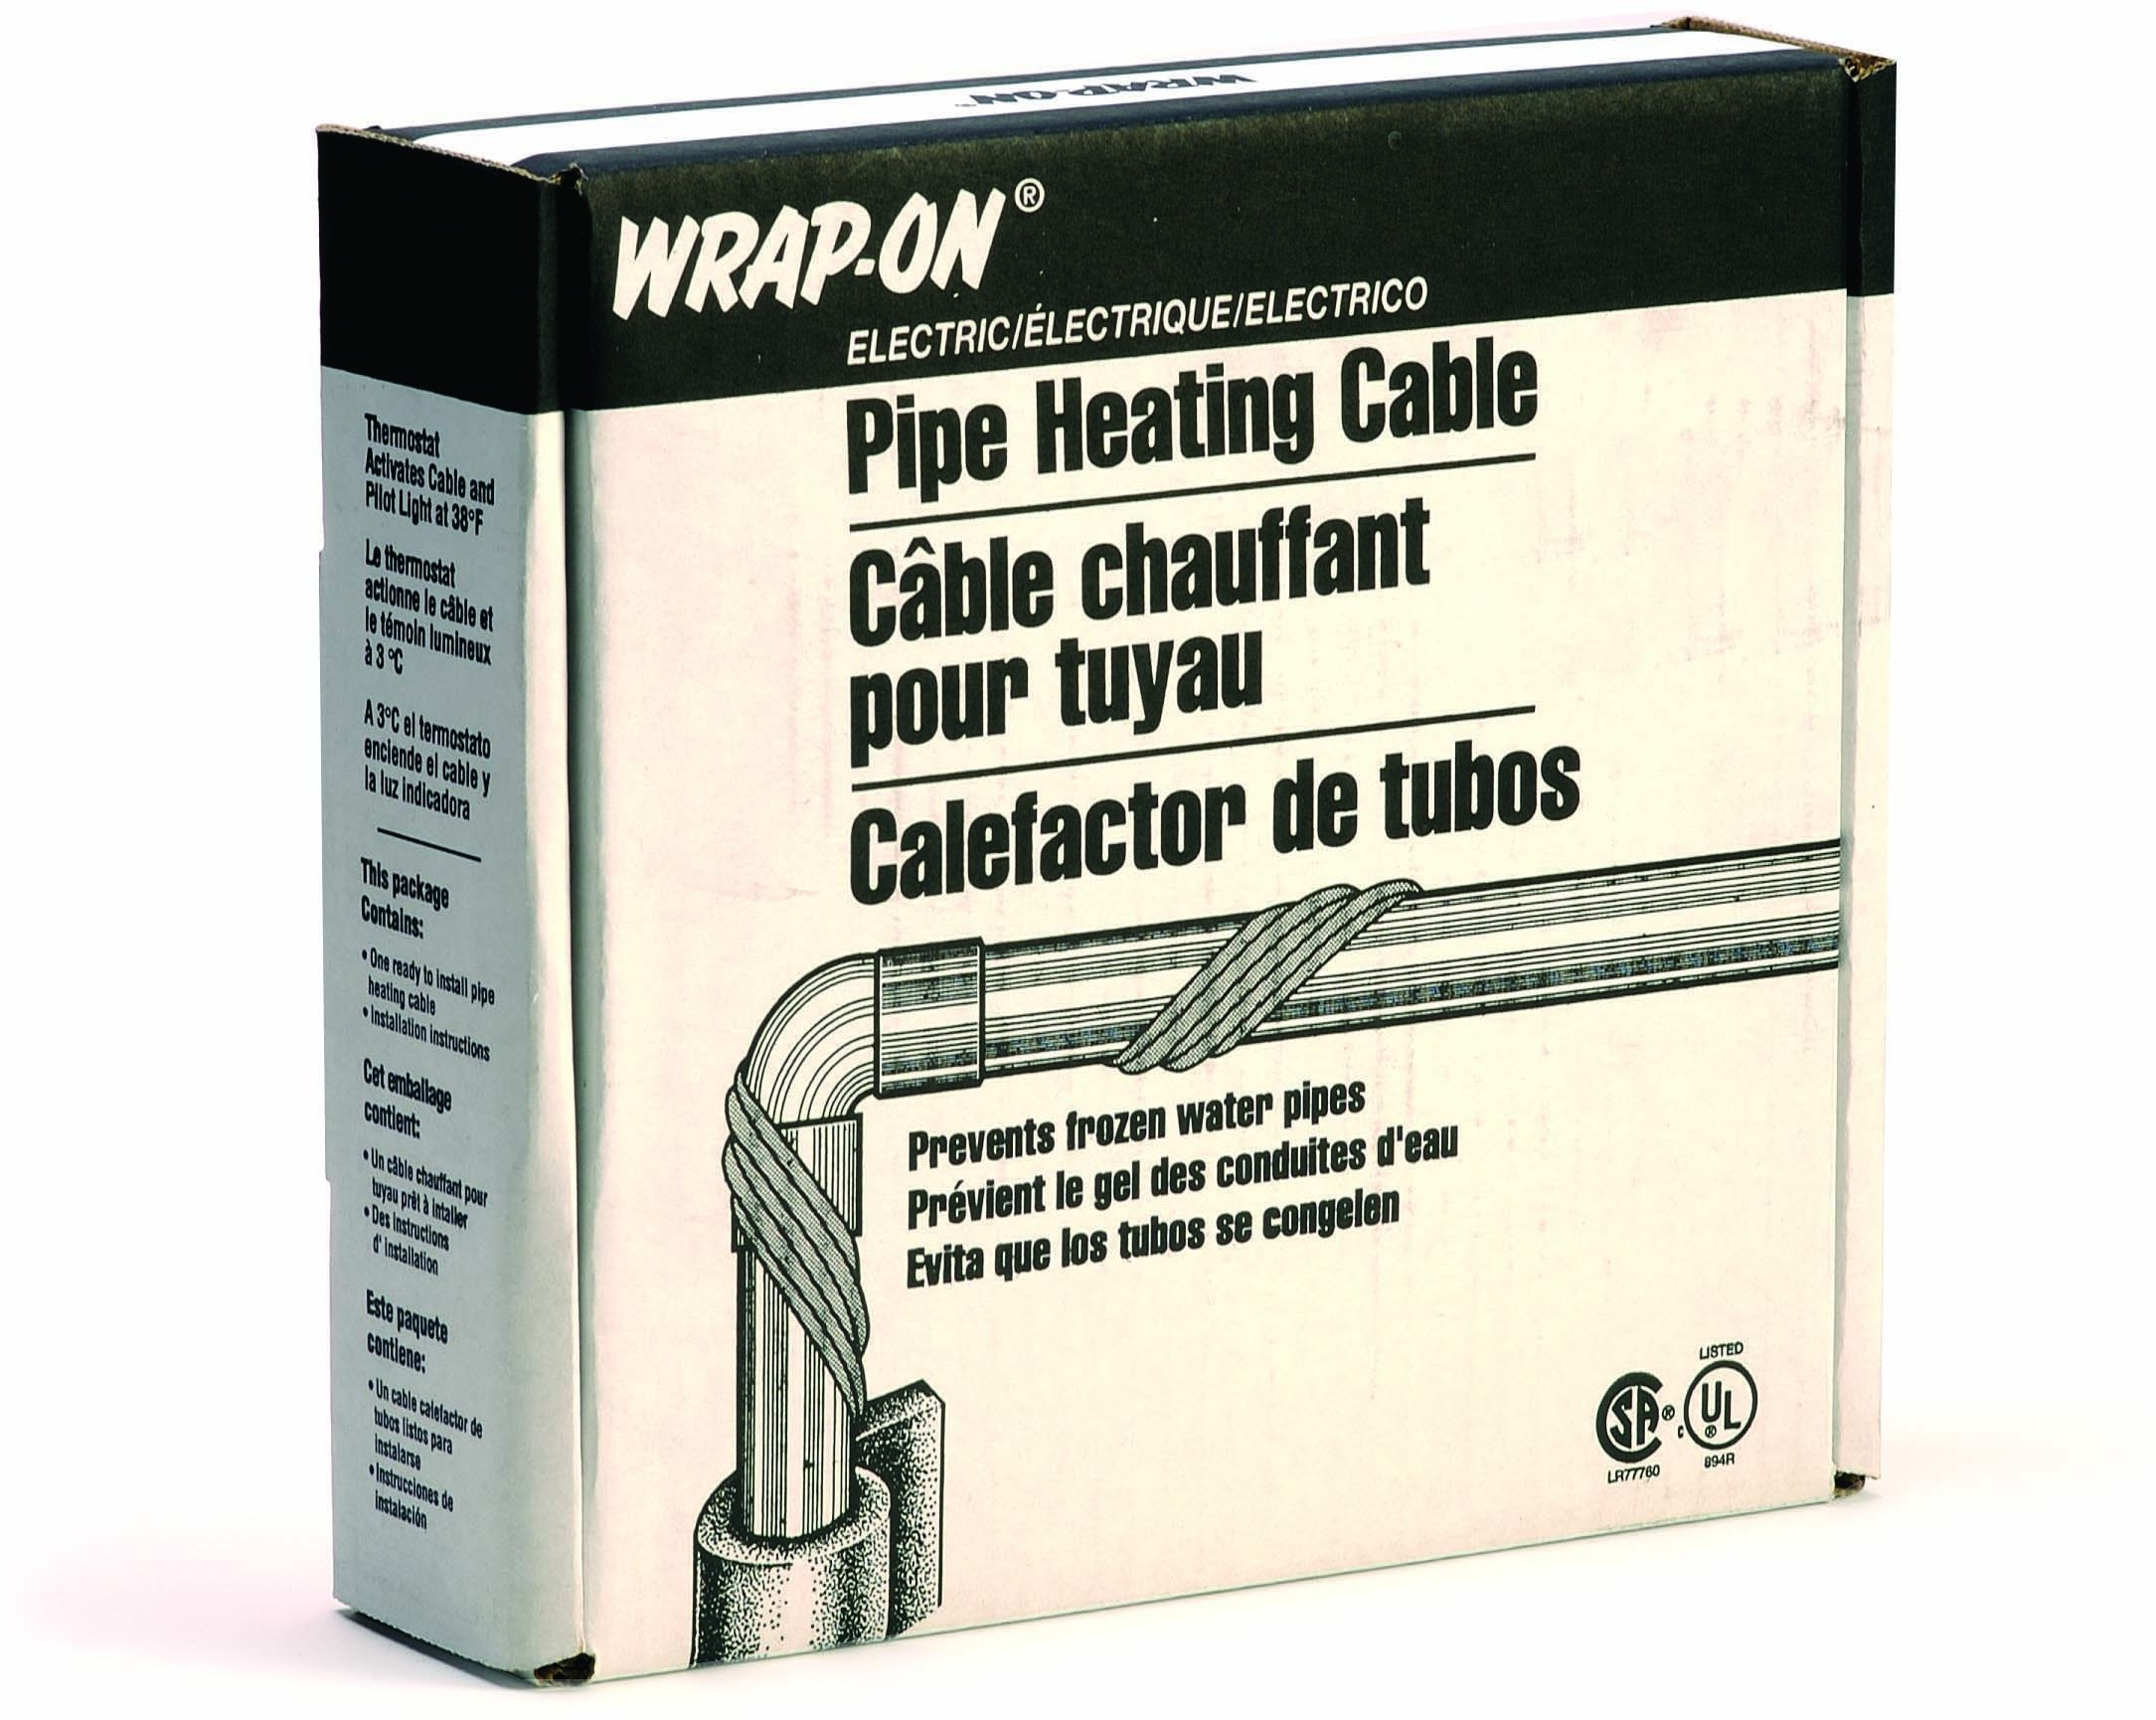 WRAP-ON Pipe Heating Cable - 45-Feet, 120 Volt, Built-in Thermostat, Low Wattage - 31045